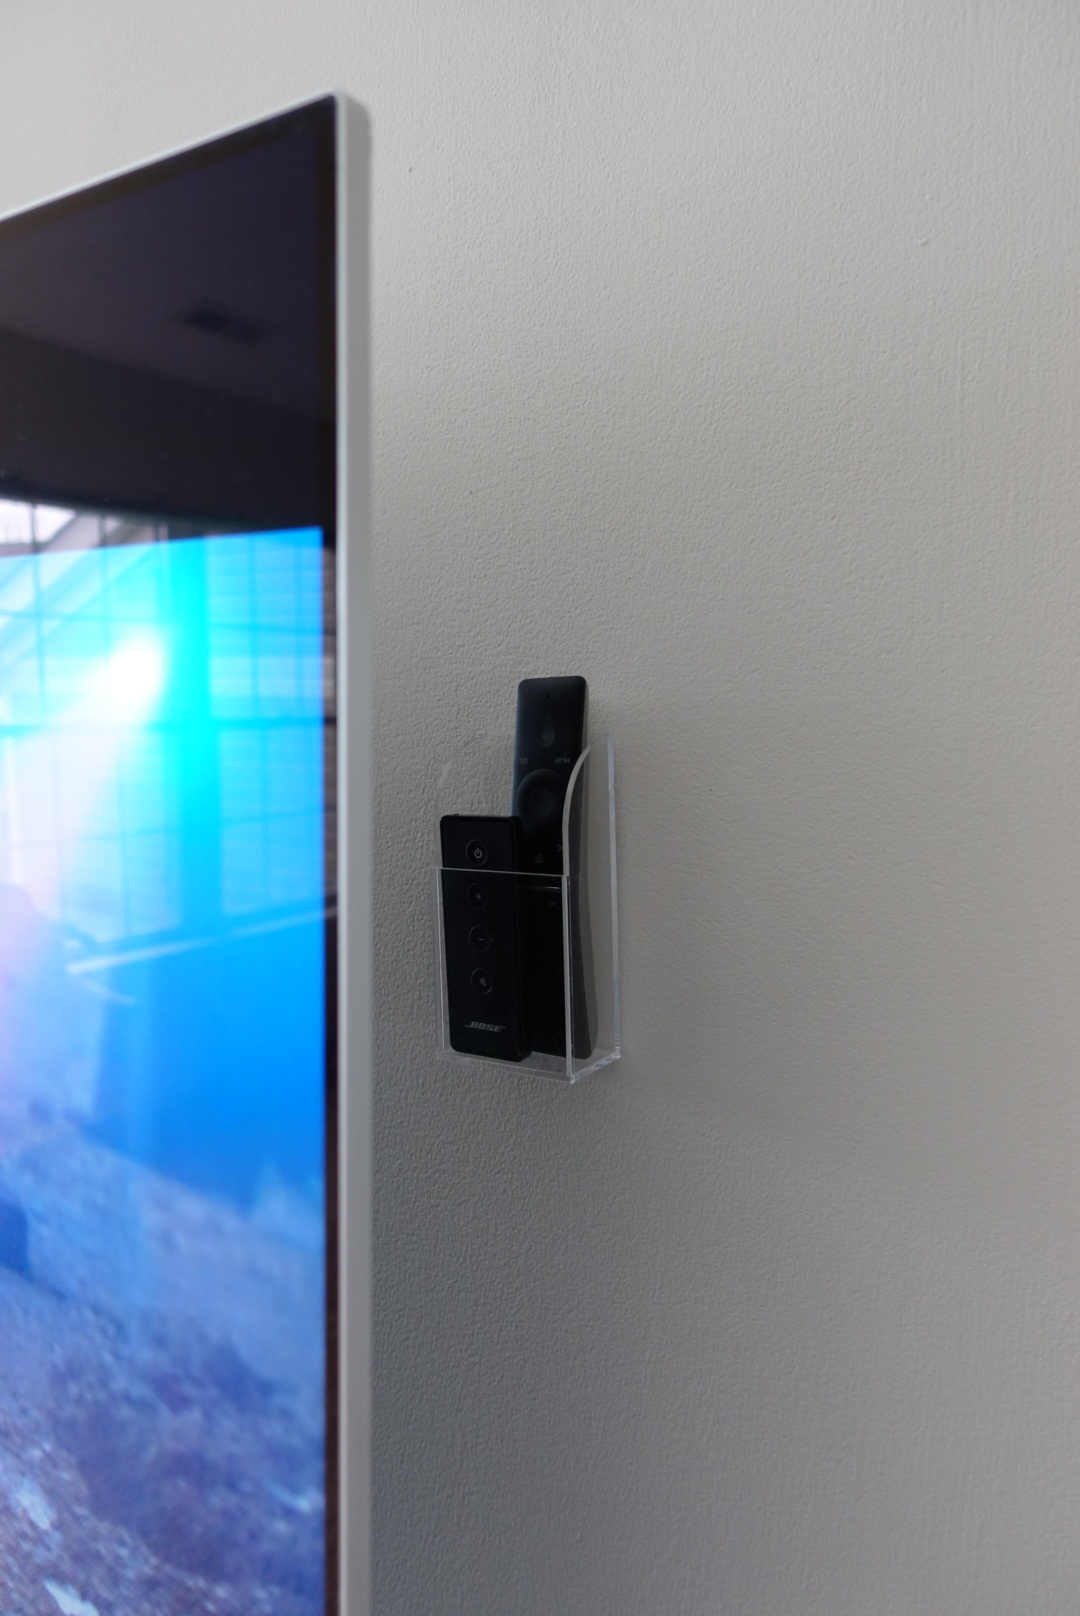 Our remote storage container is behind our television so you can't see it when viewing the TV from the front.